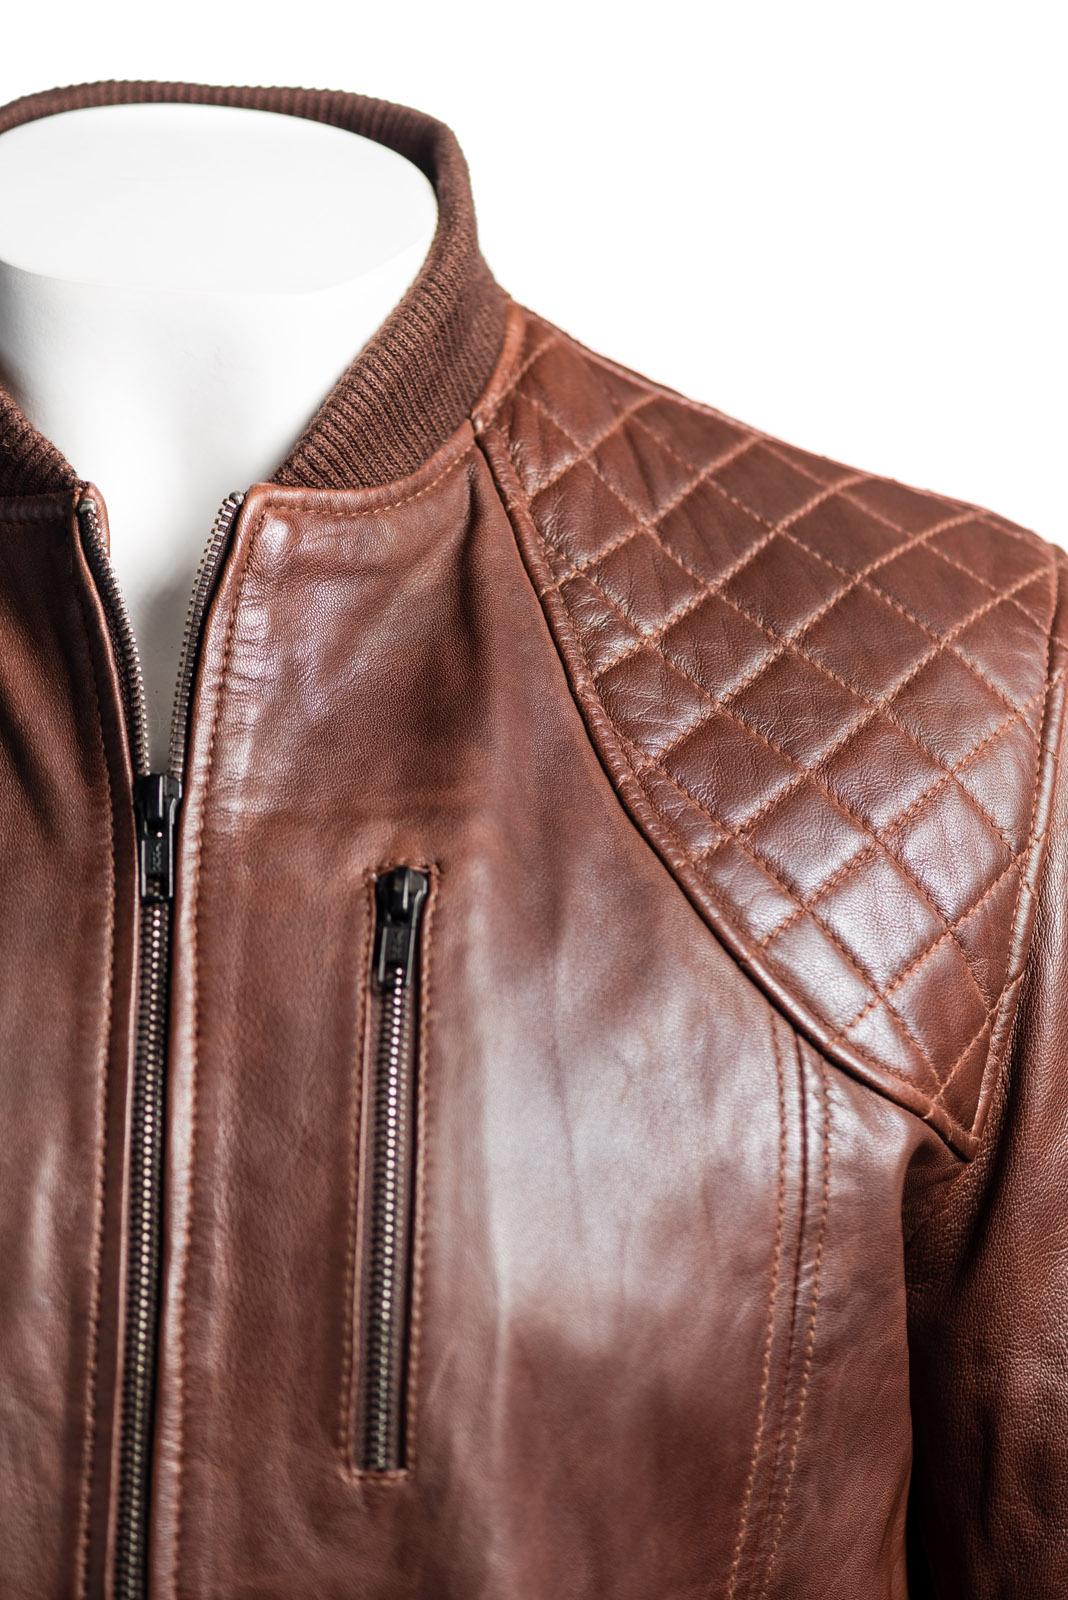 Knit and leather jacket